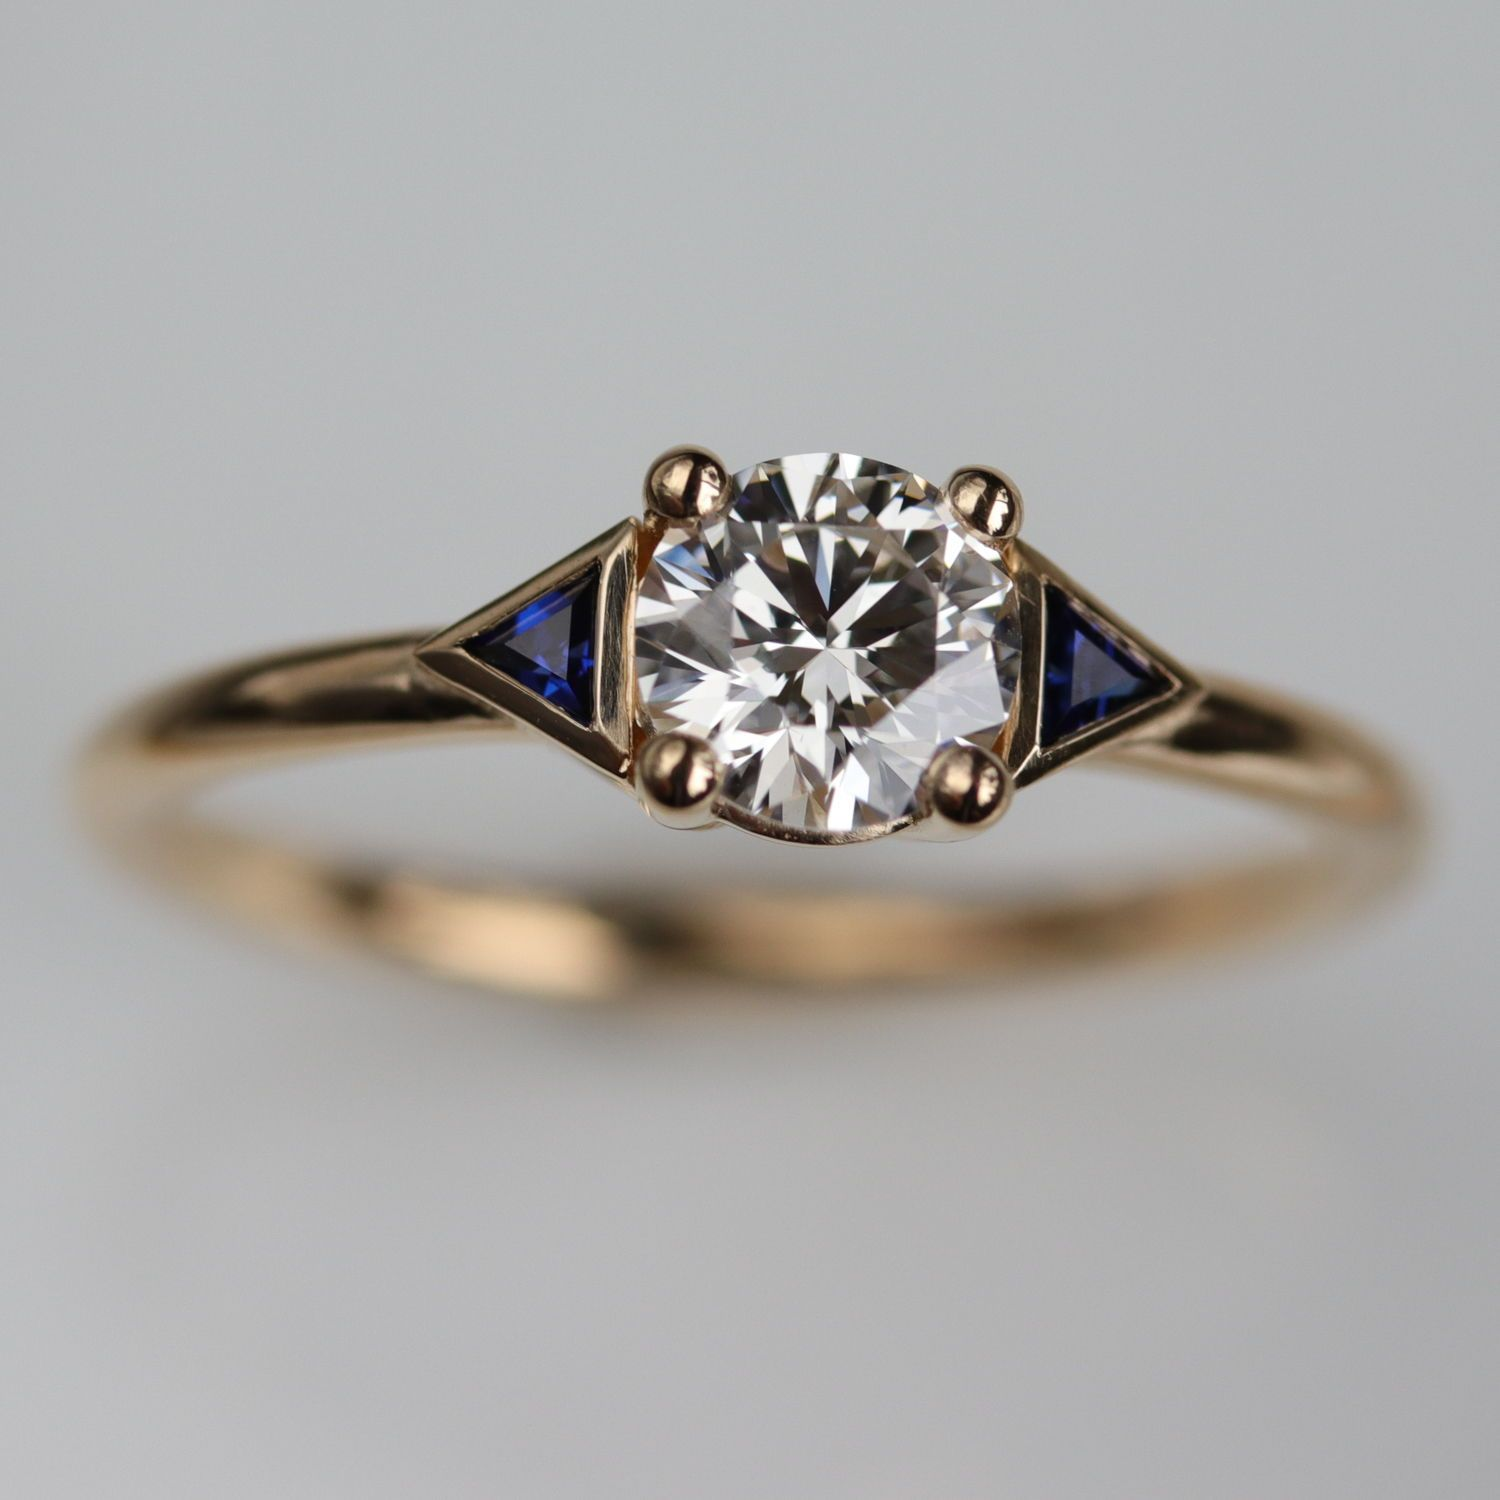 Green Sapphire /& Diamond Ring Set in Yellow Gold Plated Silver With Satin Finish